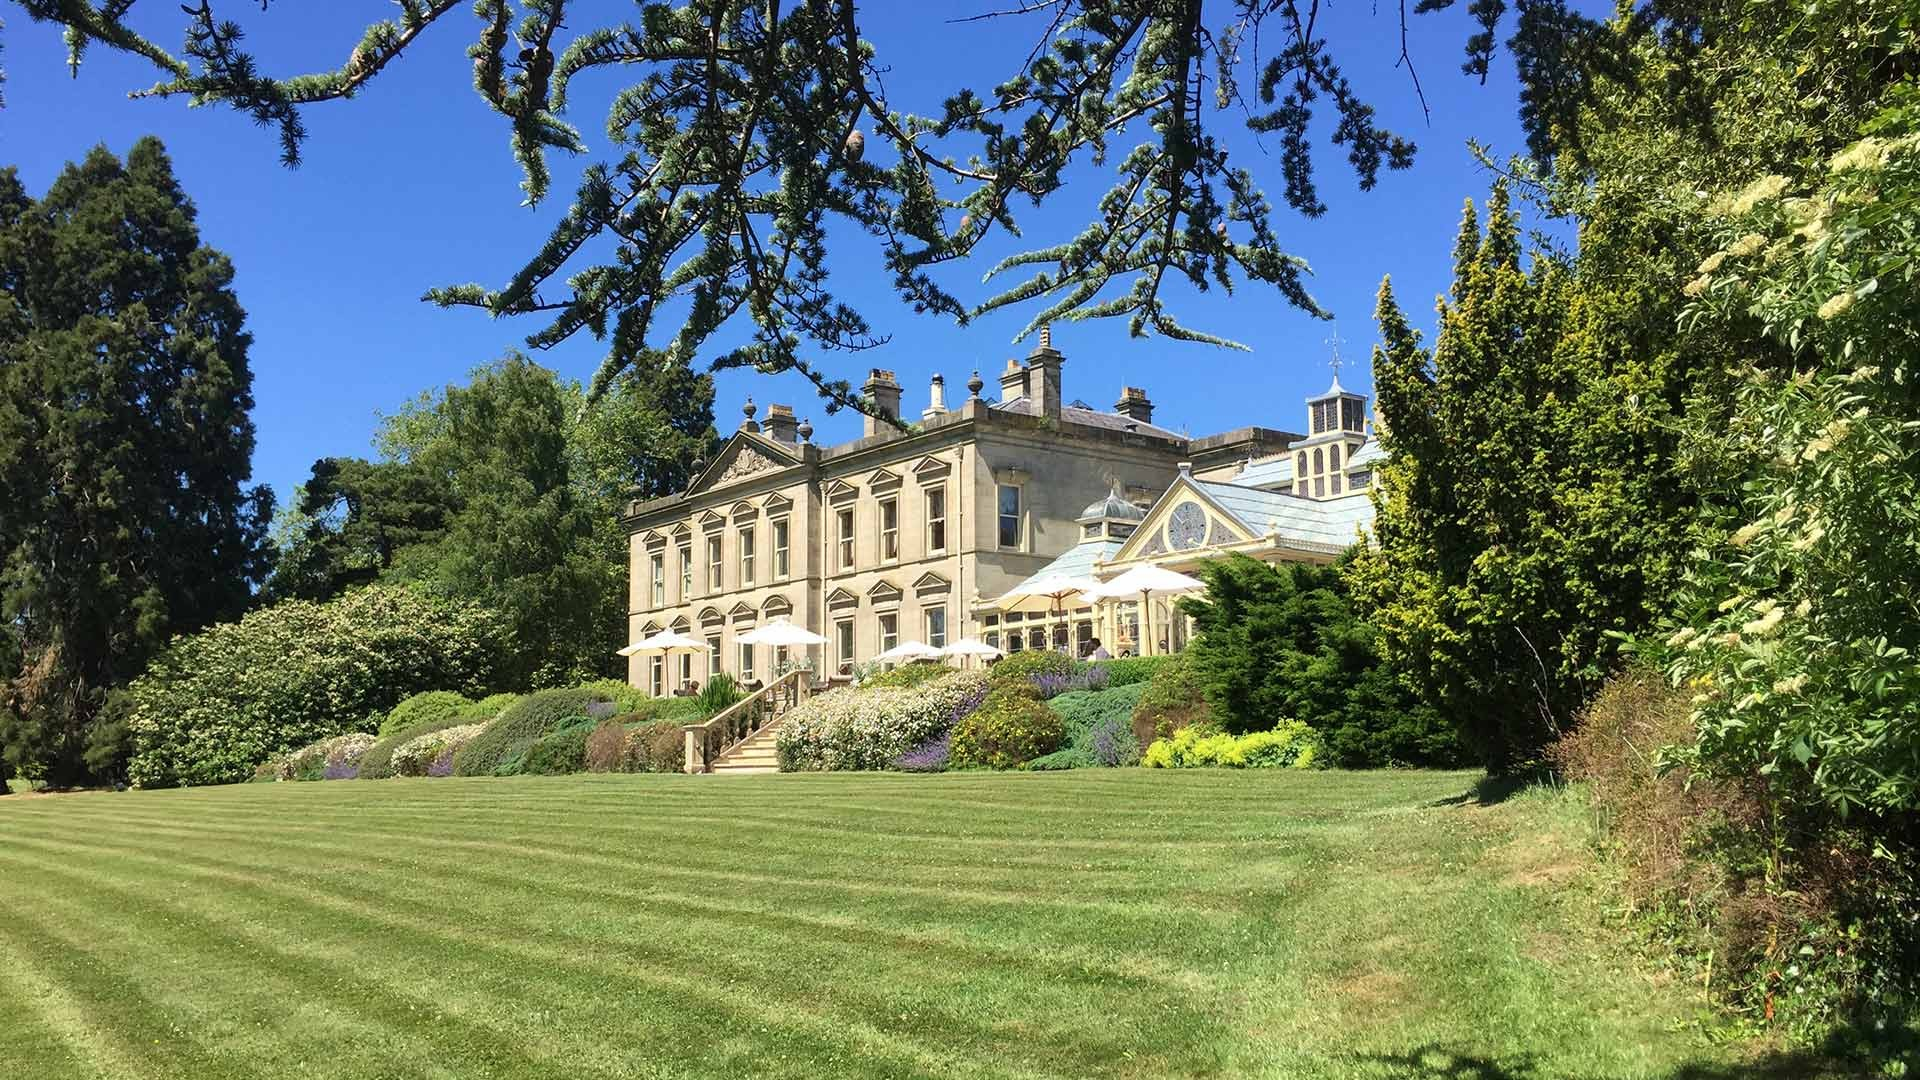 Kilworth house hotel theatre lutterworth leics pride for Classic uk house